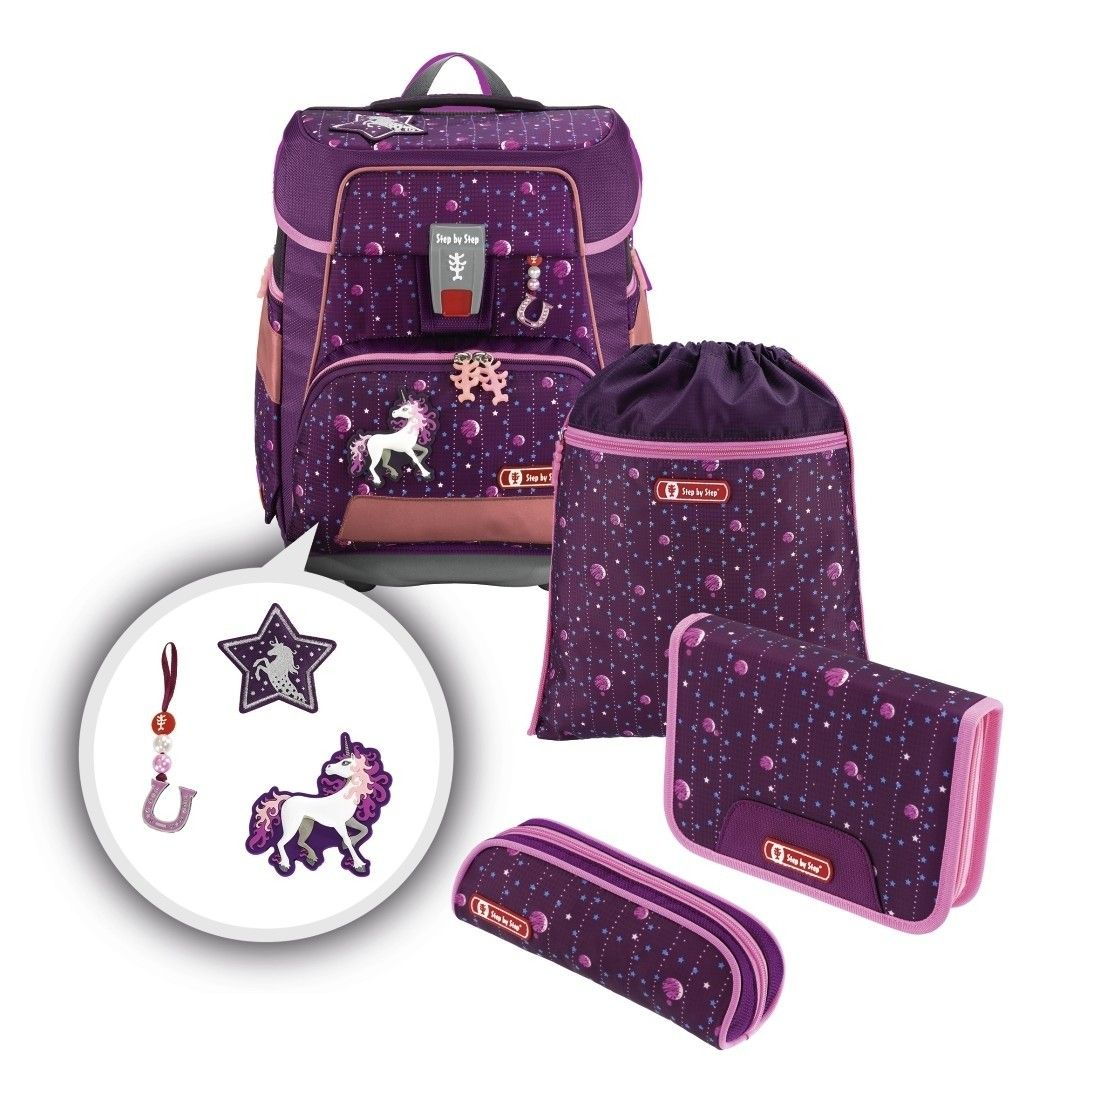 Step by Step Schulranzenset e-SPACE Dreamy Unicorn, 5-teilig